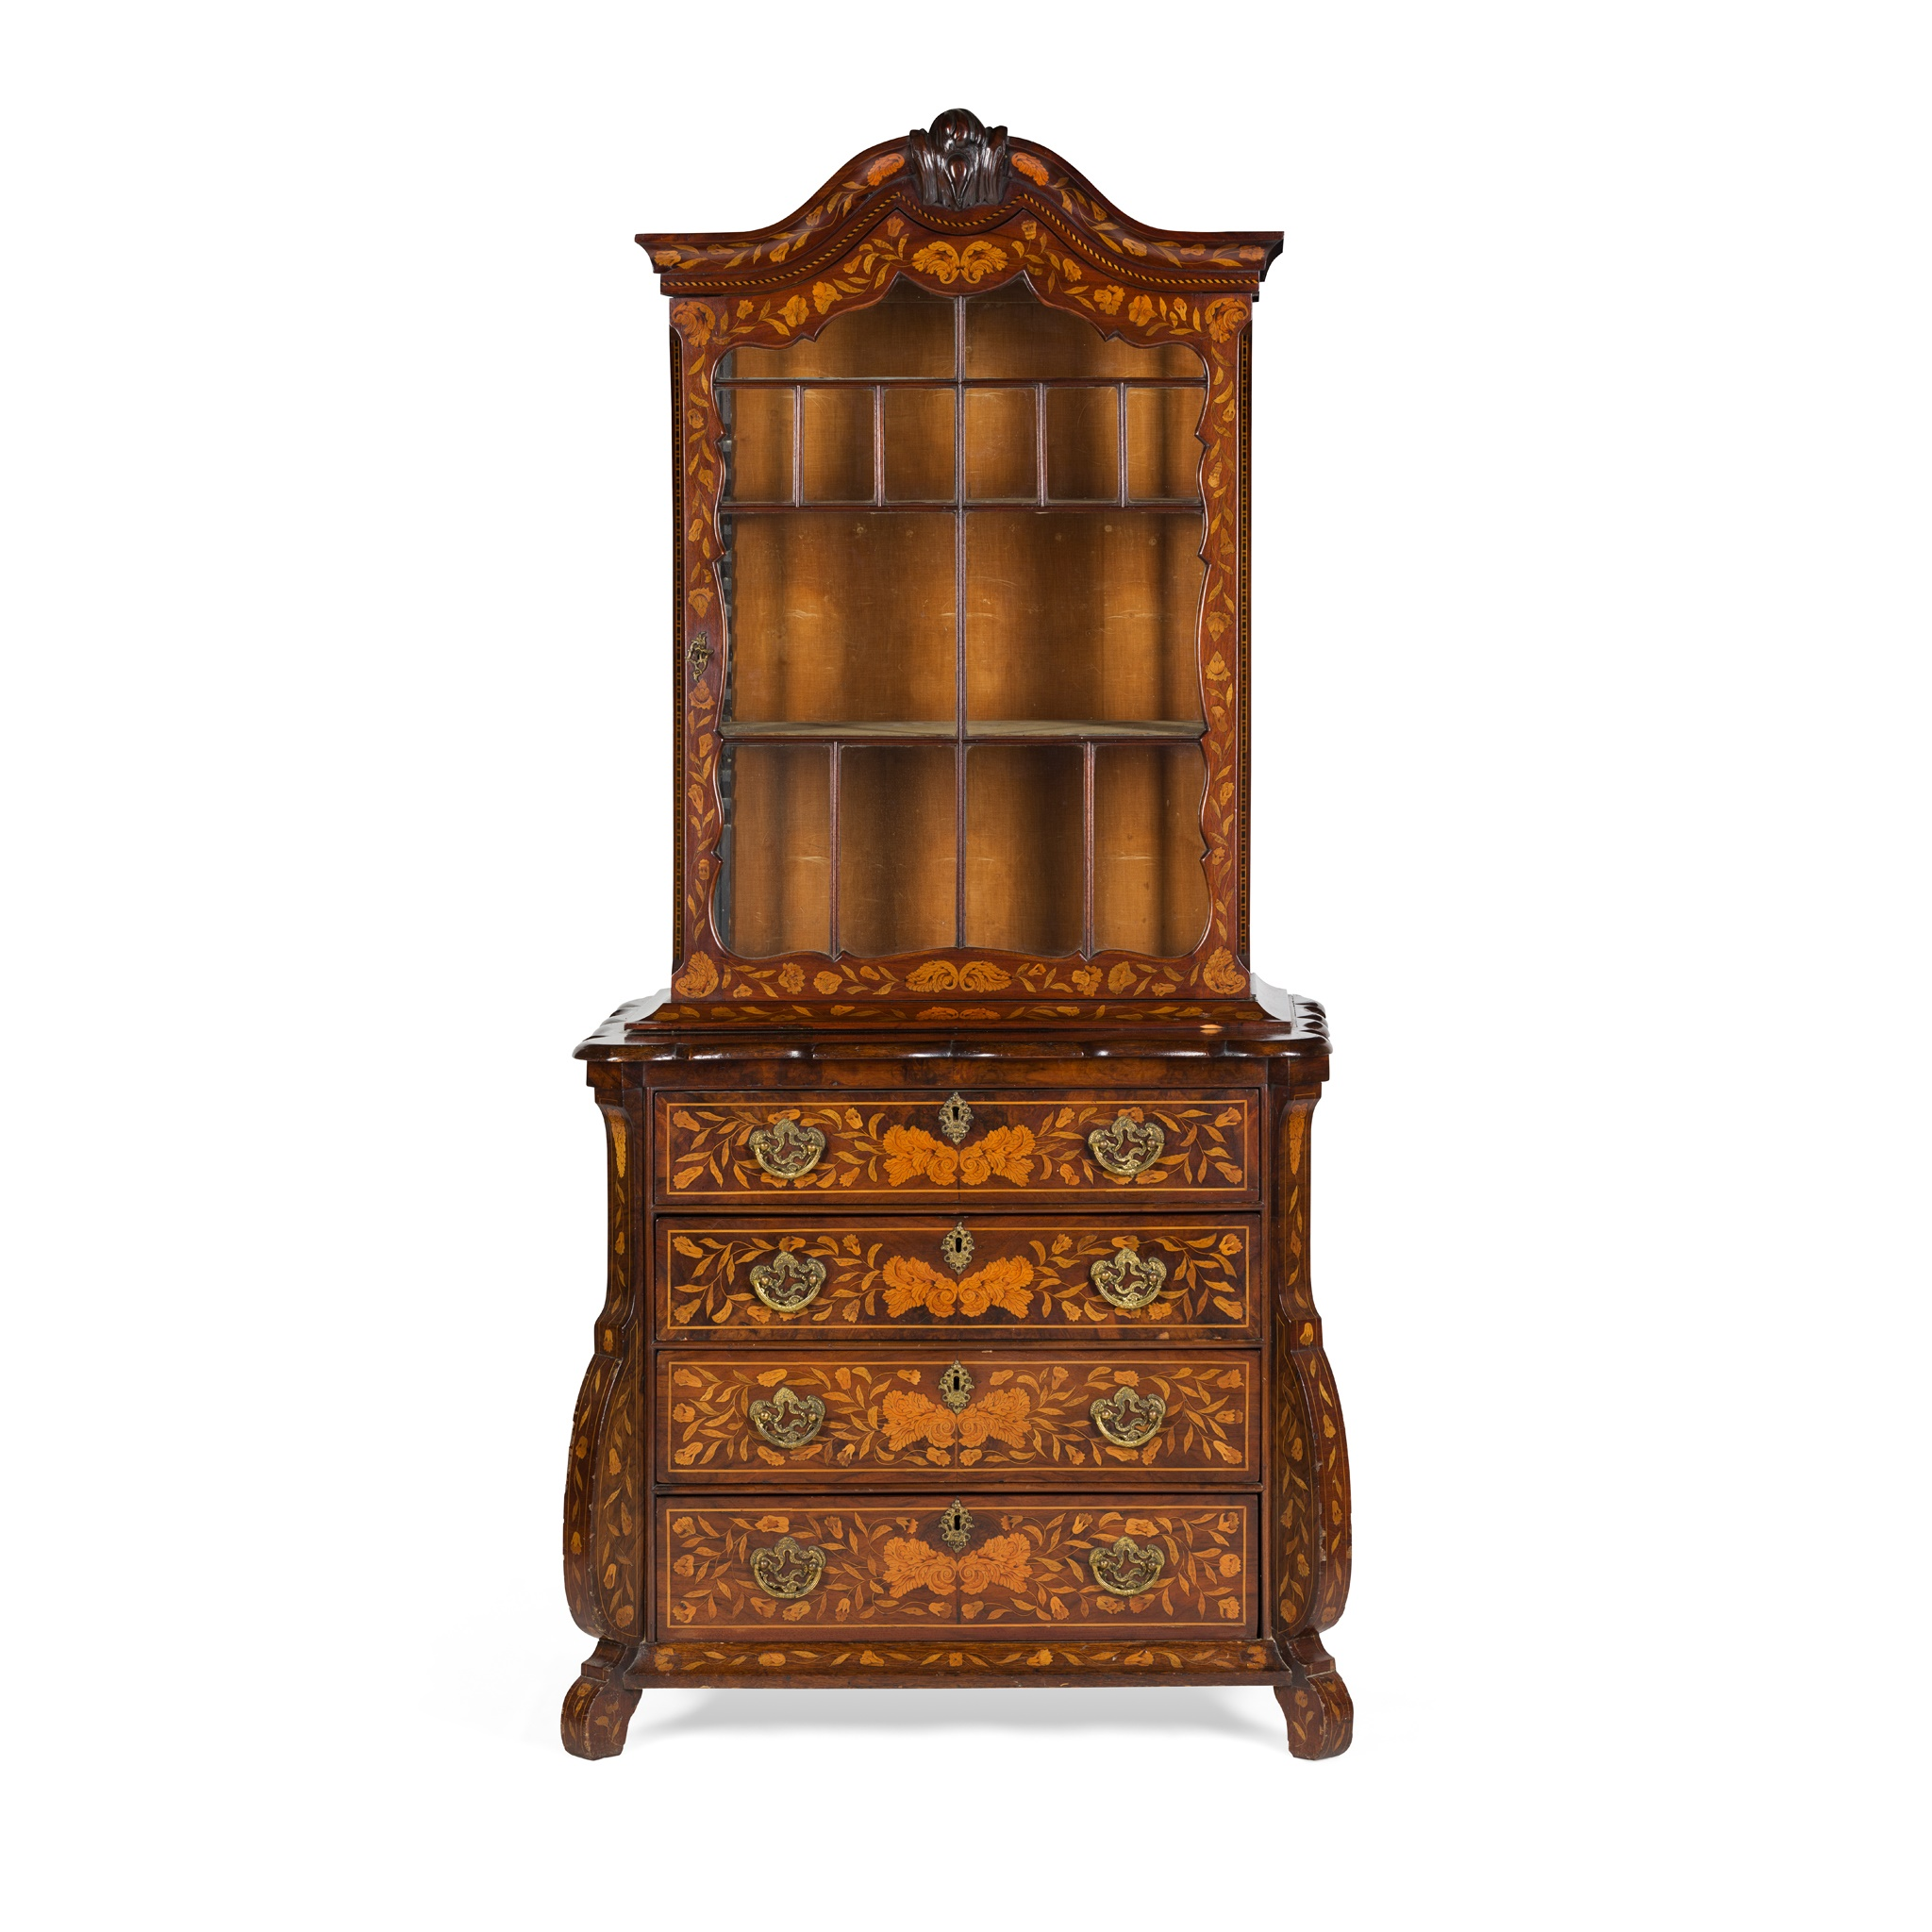 DUTCH WALNUT AND MARQUETRY DISPLAY CABINET-ON-CHEST EARLY 19TH CENTURY